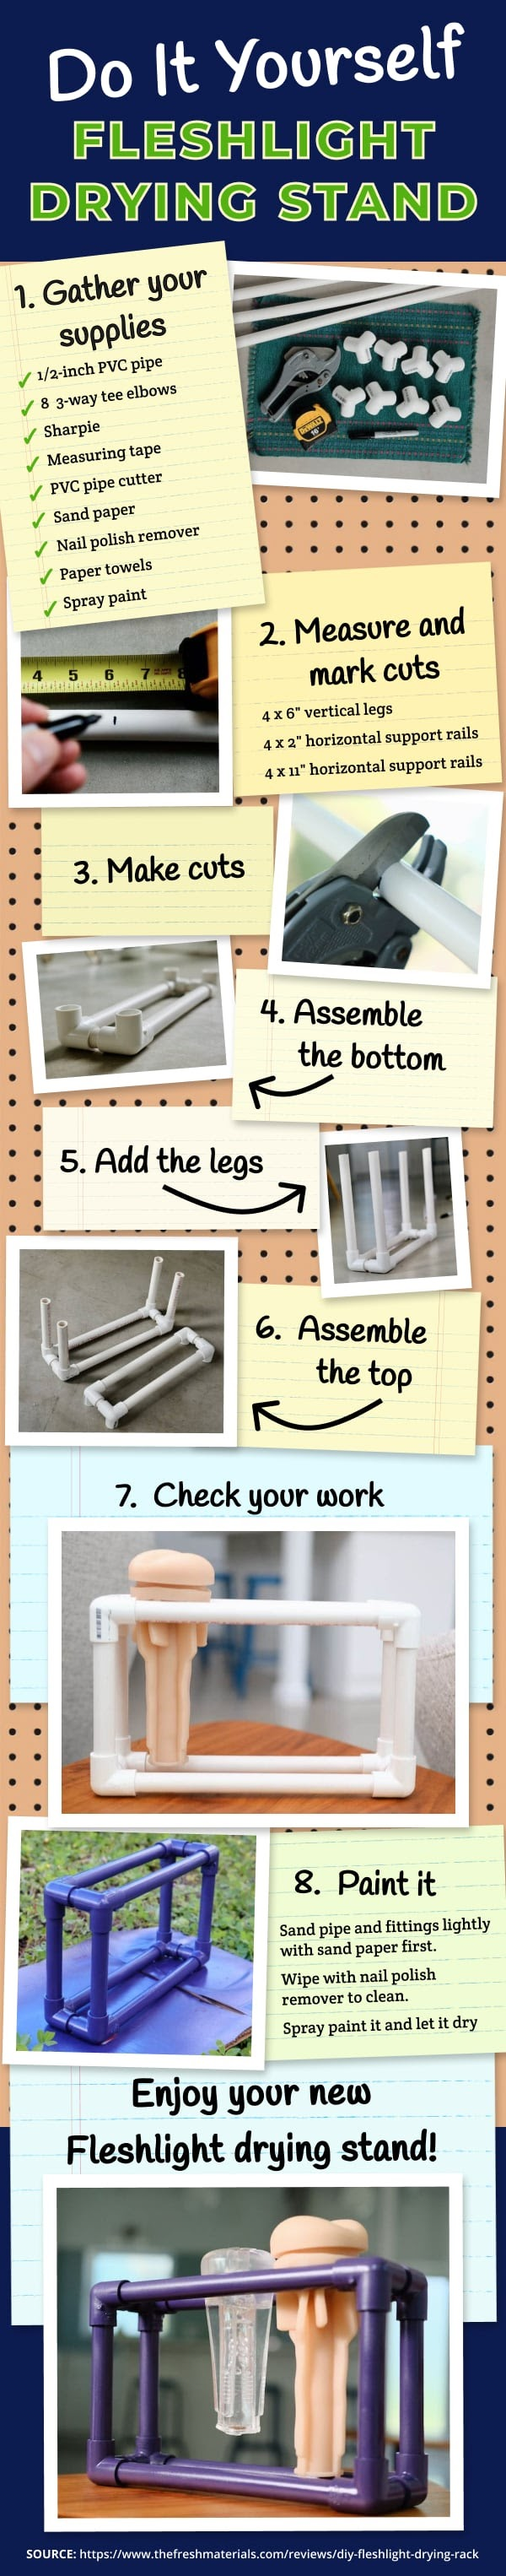 How To Make A DIY Fleshlight Drying Rack In 7 Easy Steps  #infographic